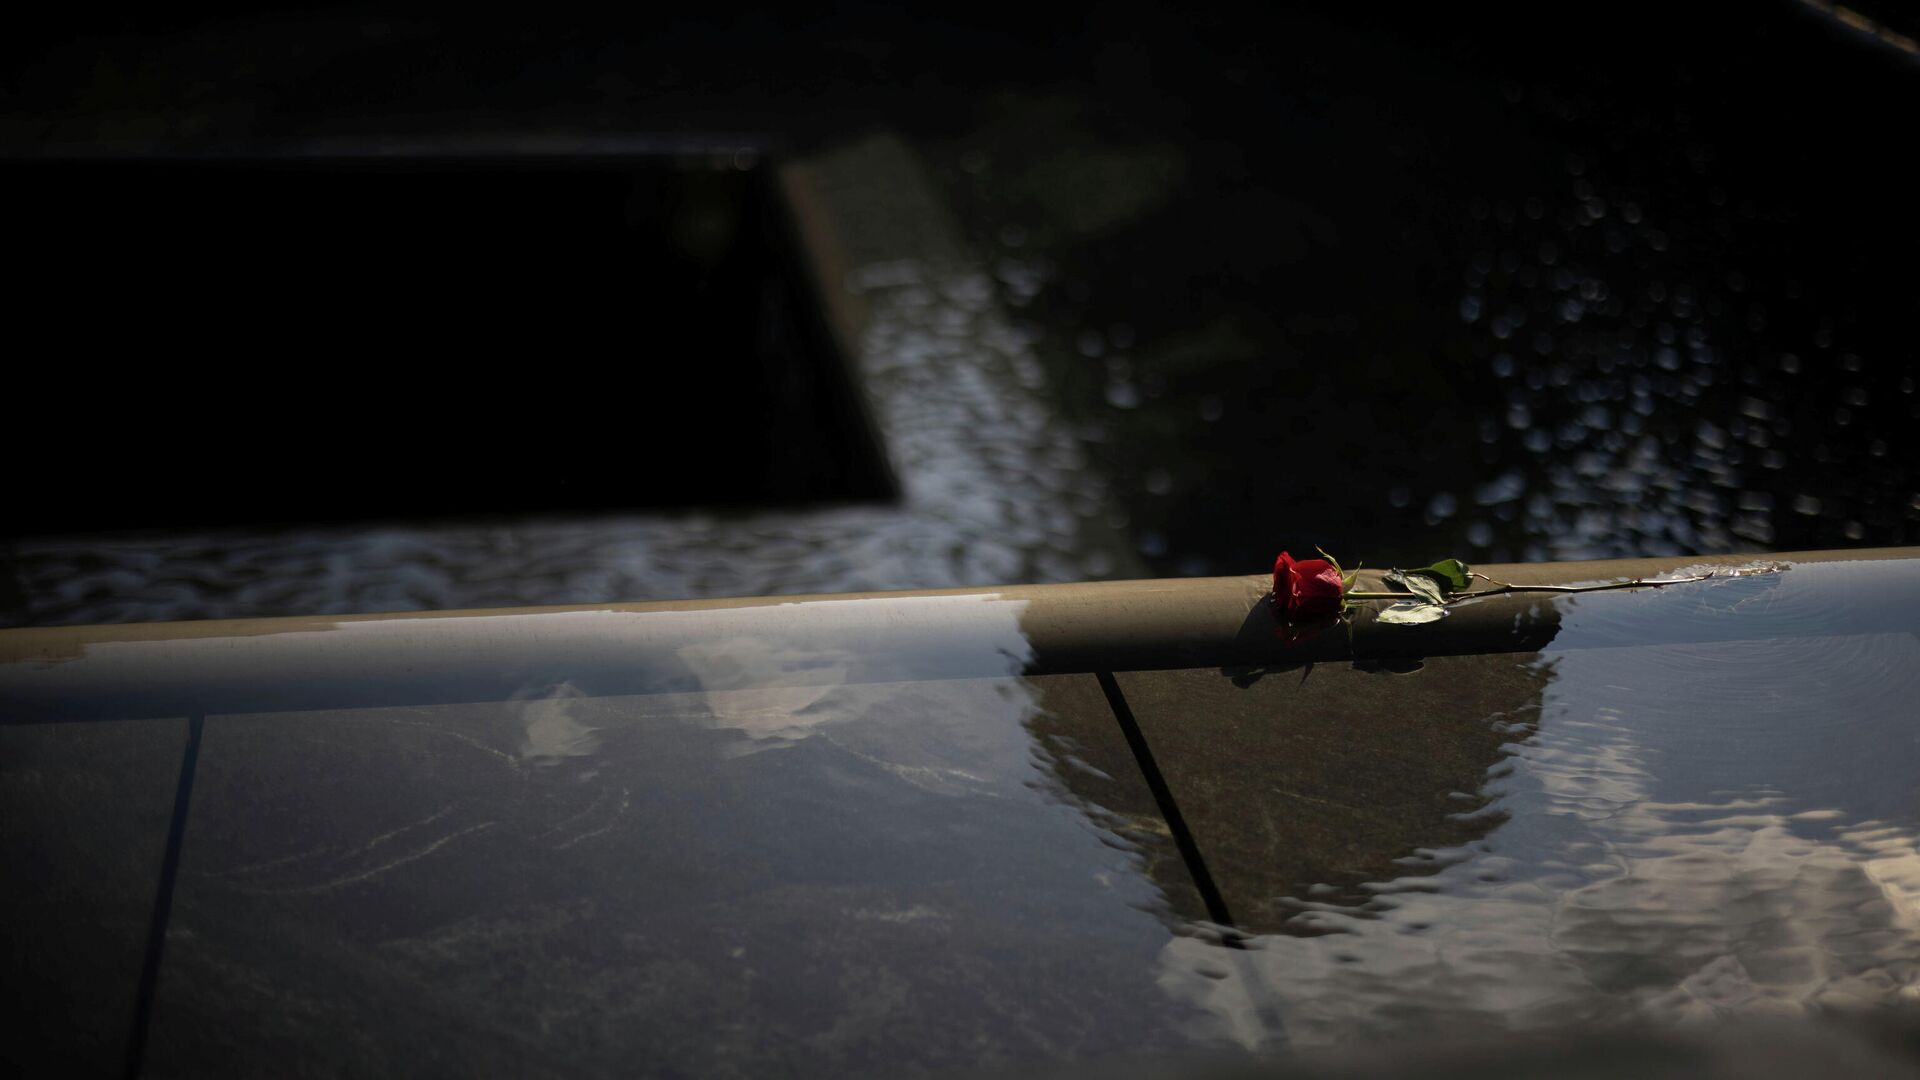 A rose is seen at the 9/11 Memorial on the day marking the 20th anniversary of the September 11, 2001 attacks in New York City, New York, U.S., September 11, 2021. - Sputnik International, 1920, 18.09.2021